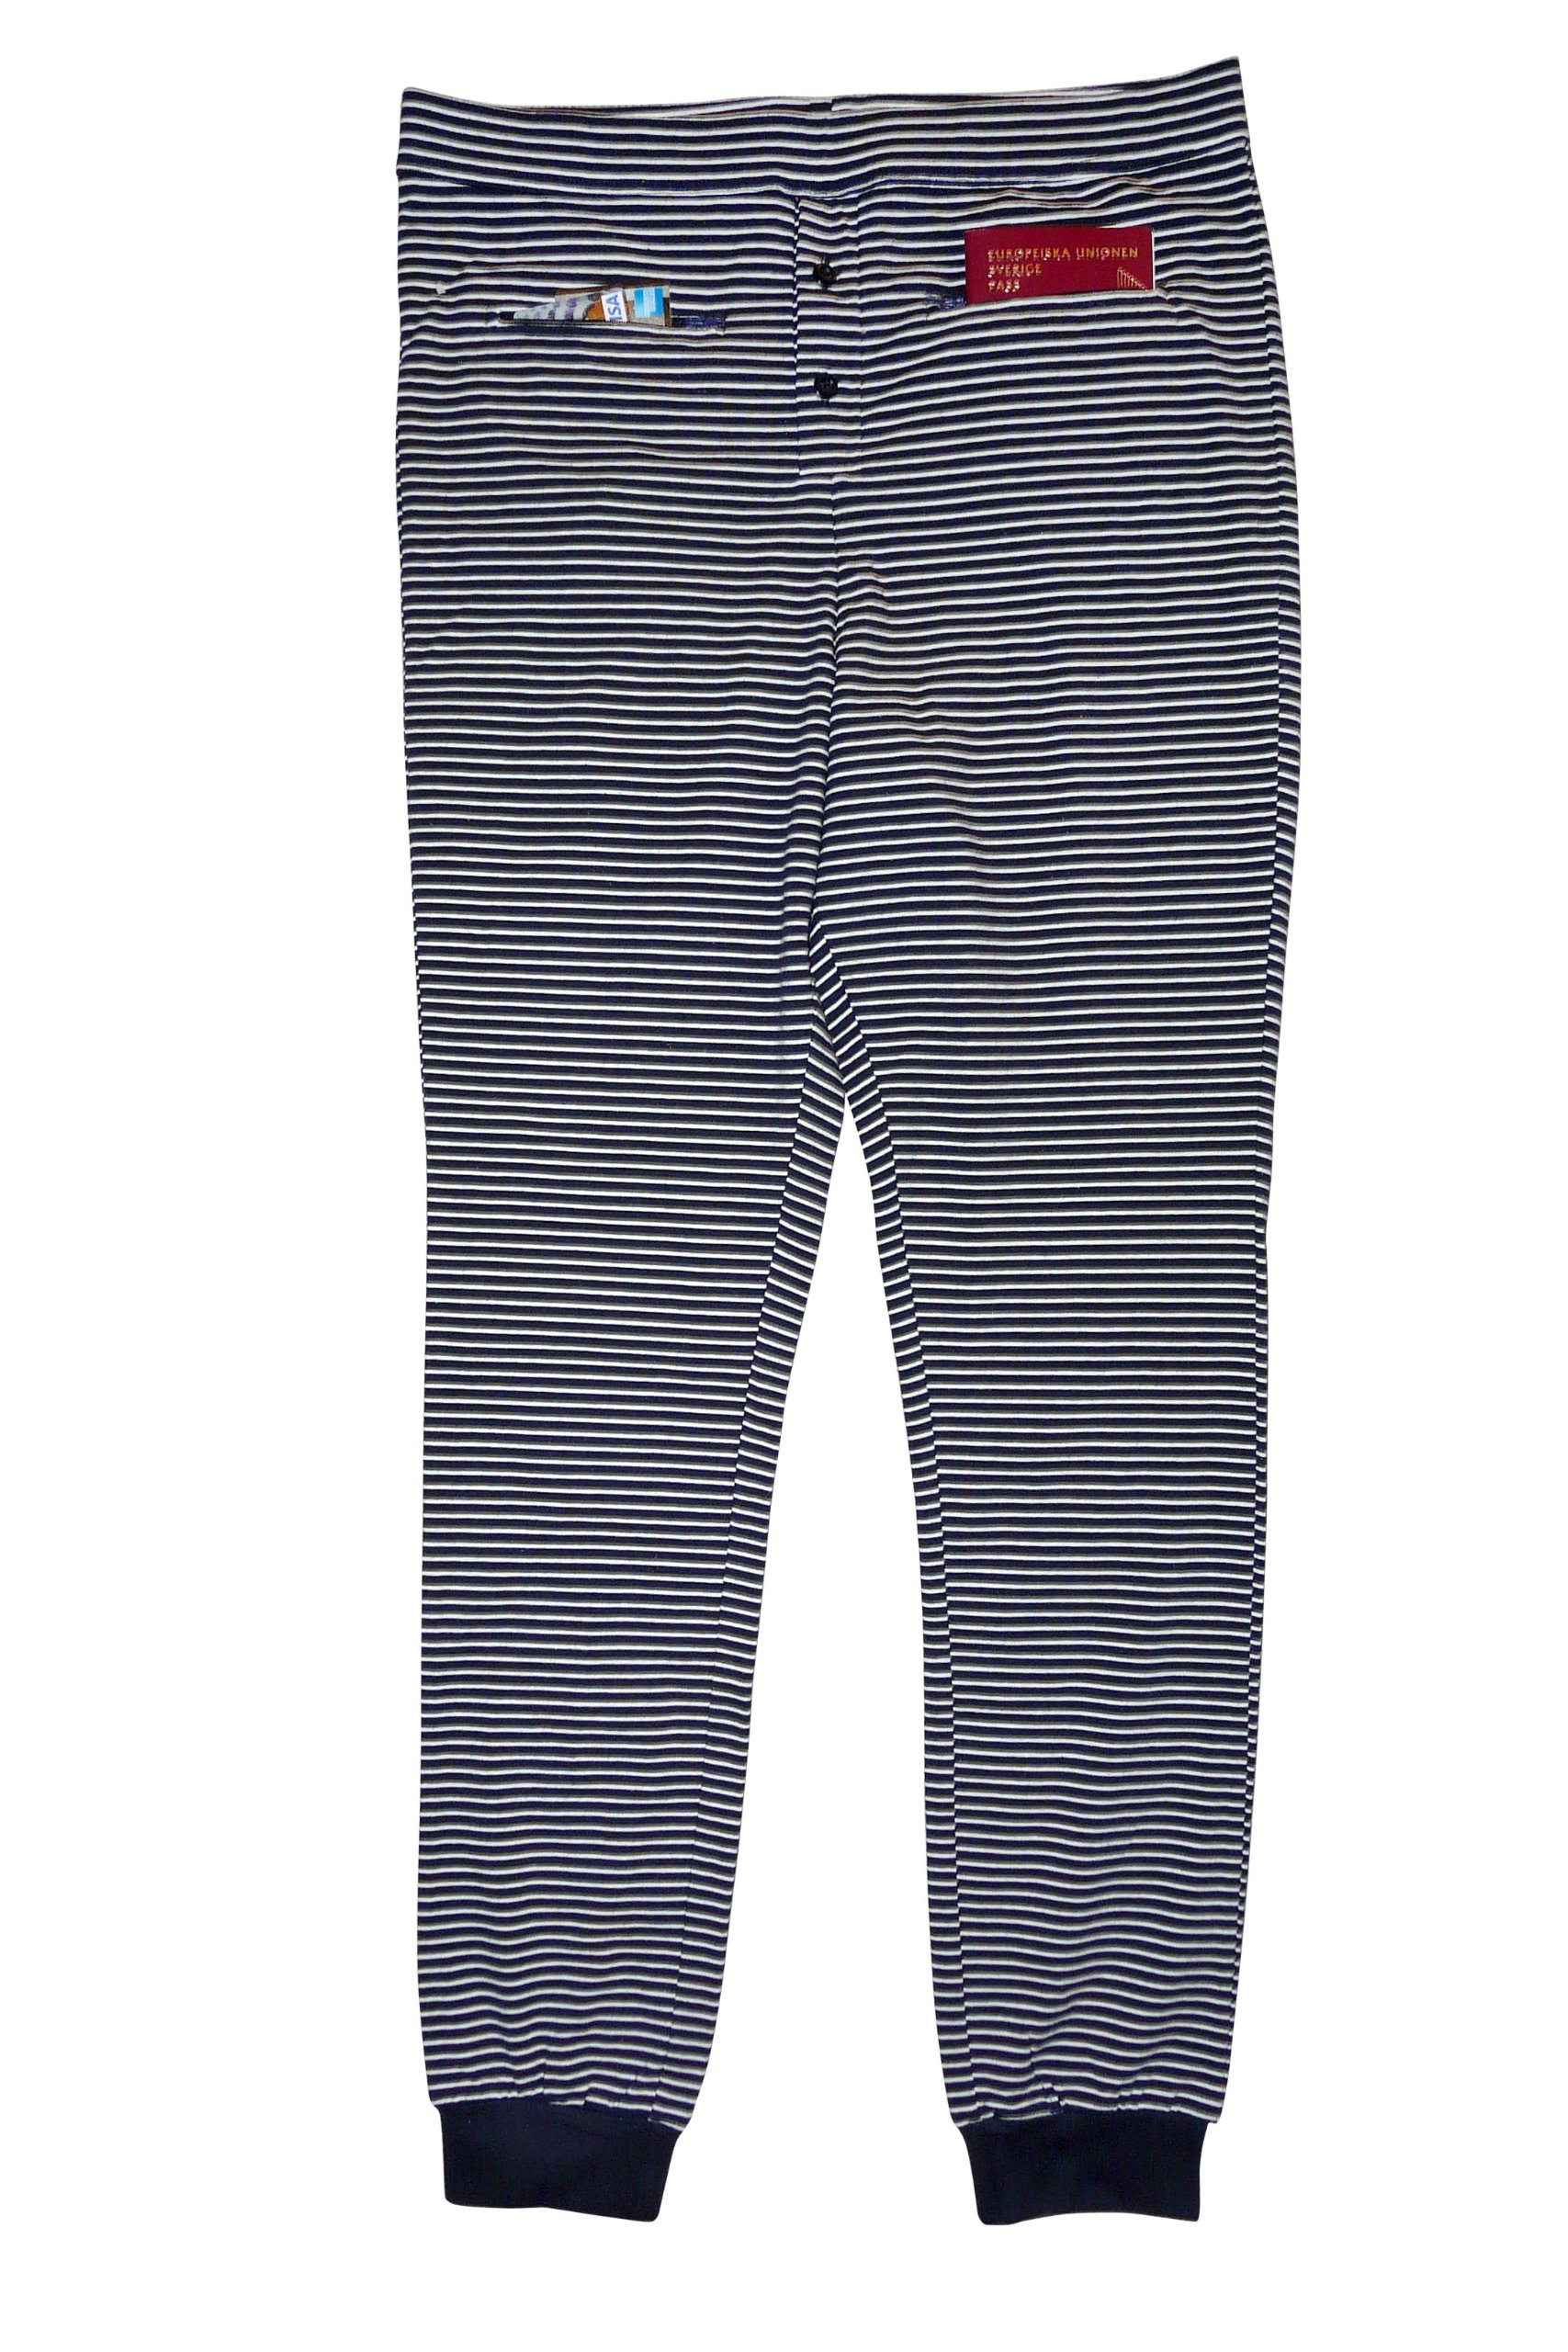 Clever Travel Companion Long Johns with Secret Pockets, Blue, Large